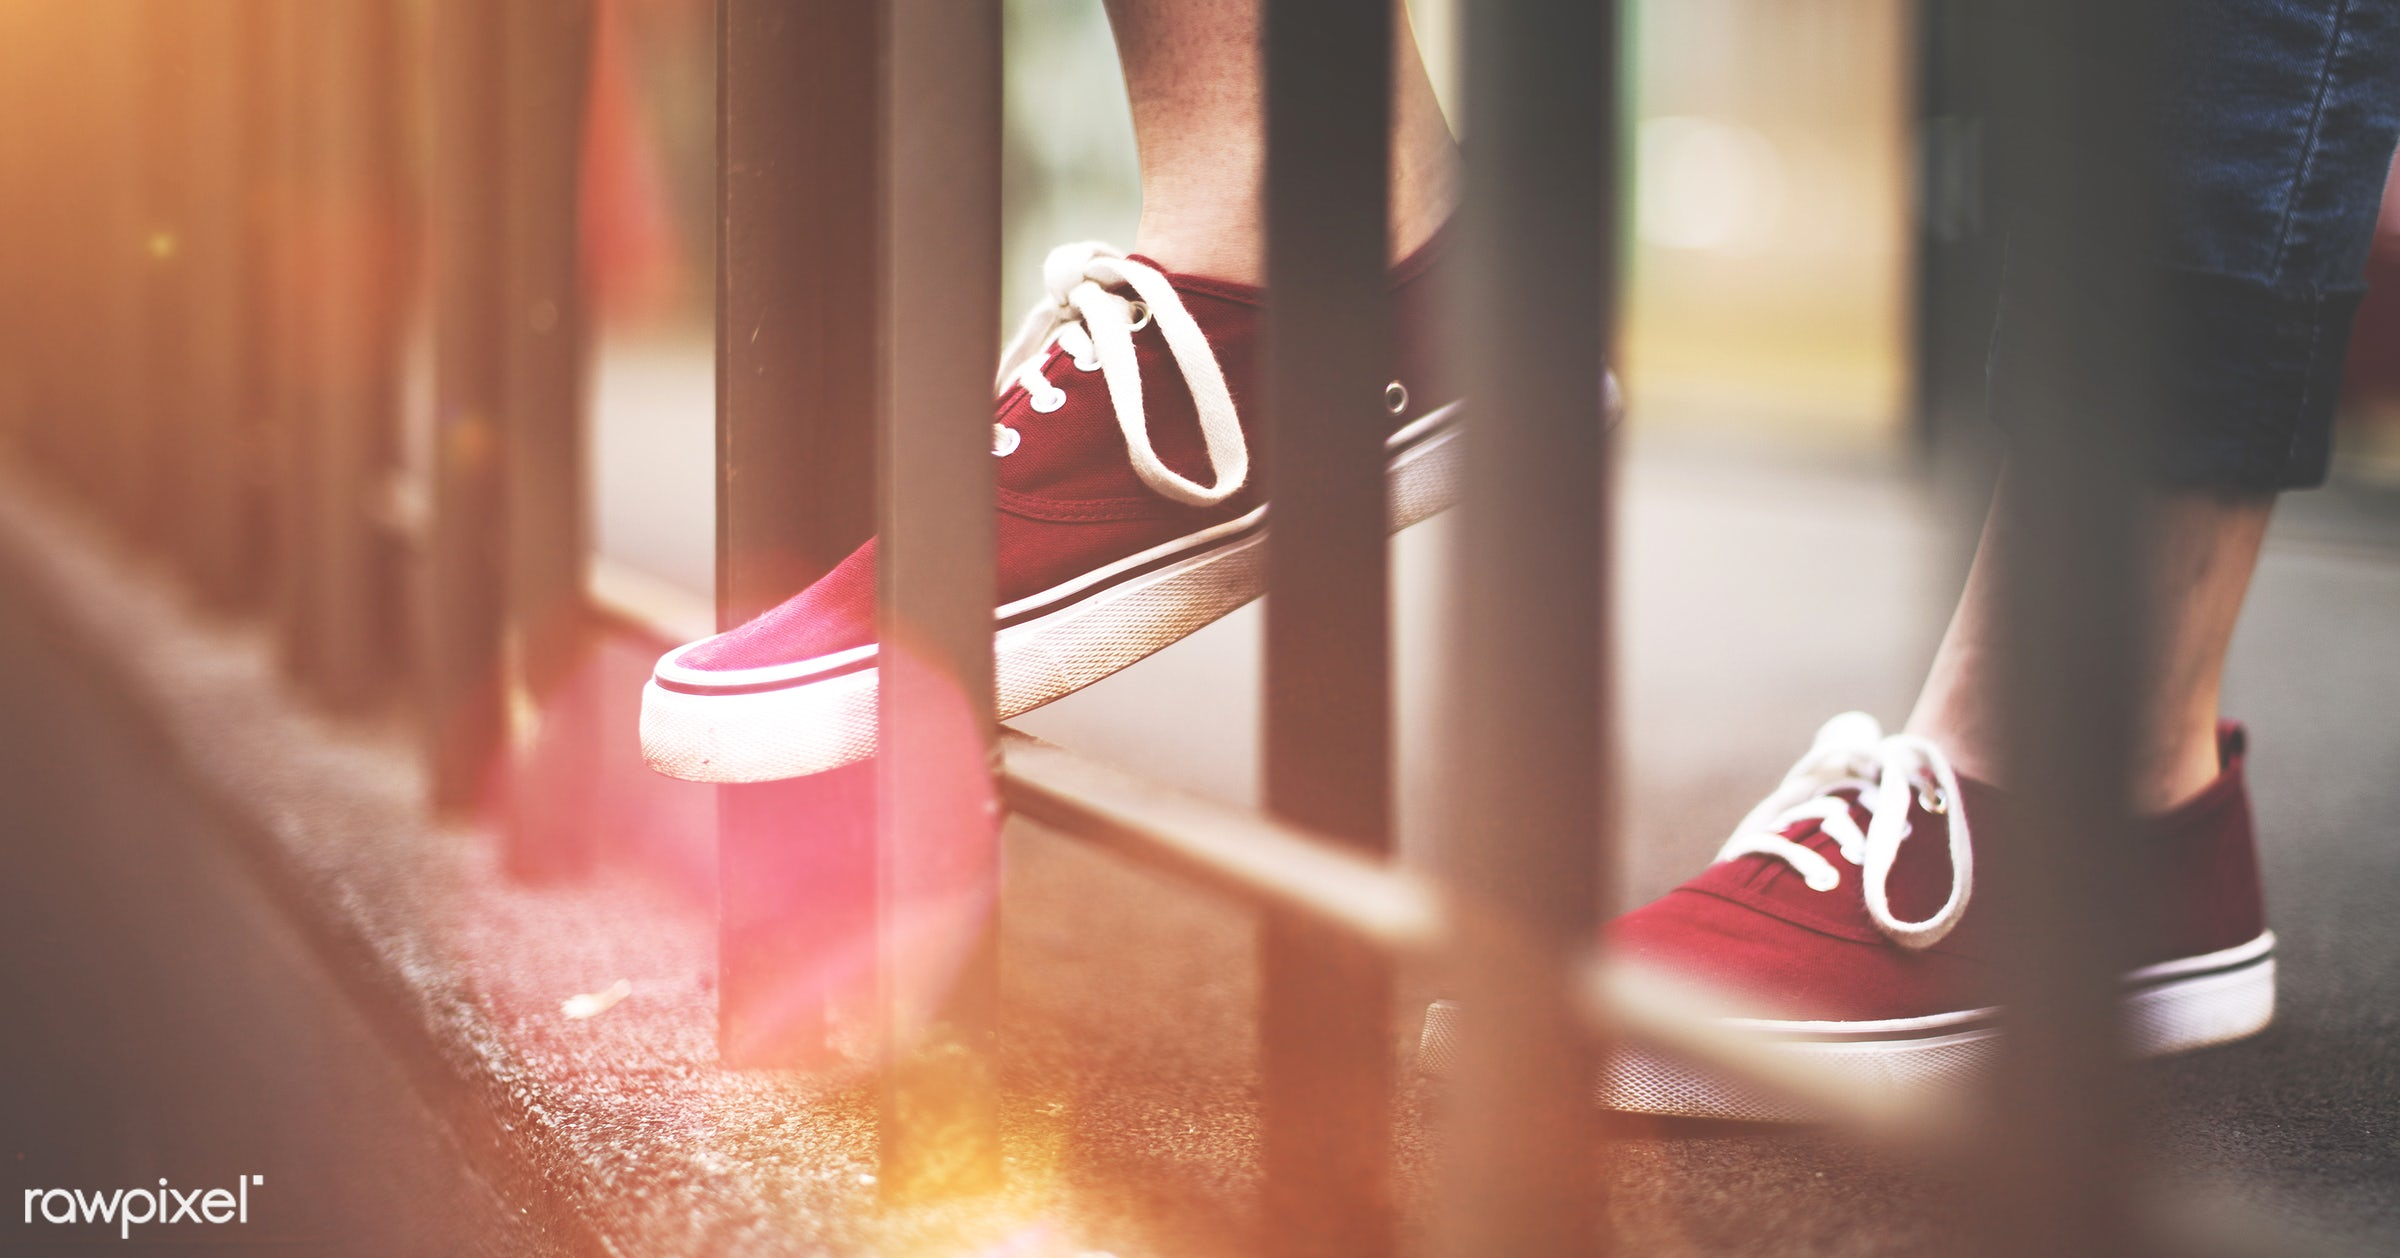 lifestyles, pair, photographing, balcony, body, canvas, canvas shoe, casual, city, city life, cool, fashionable, feet, foot...